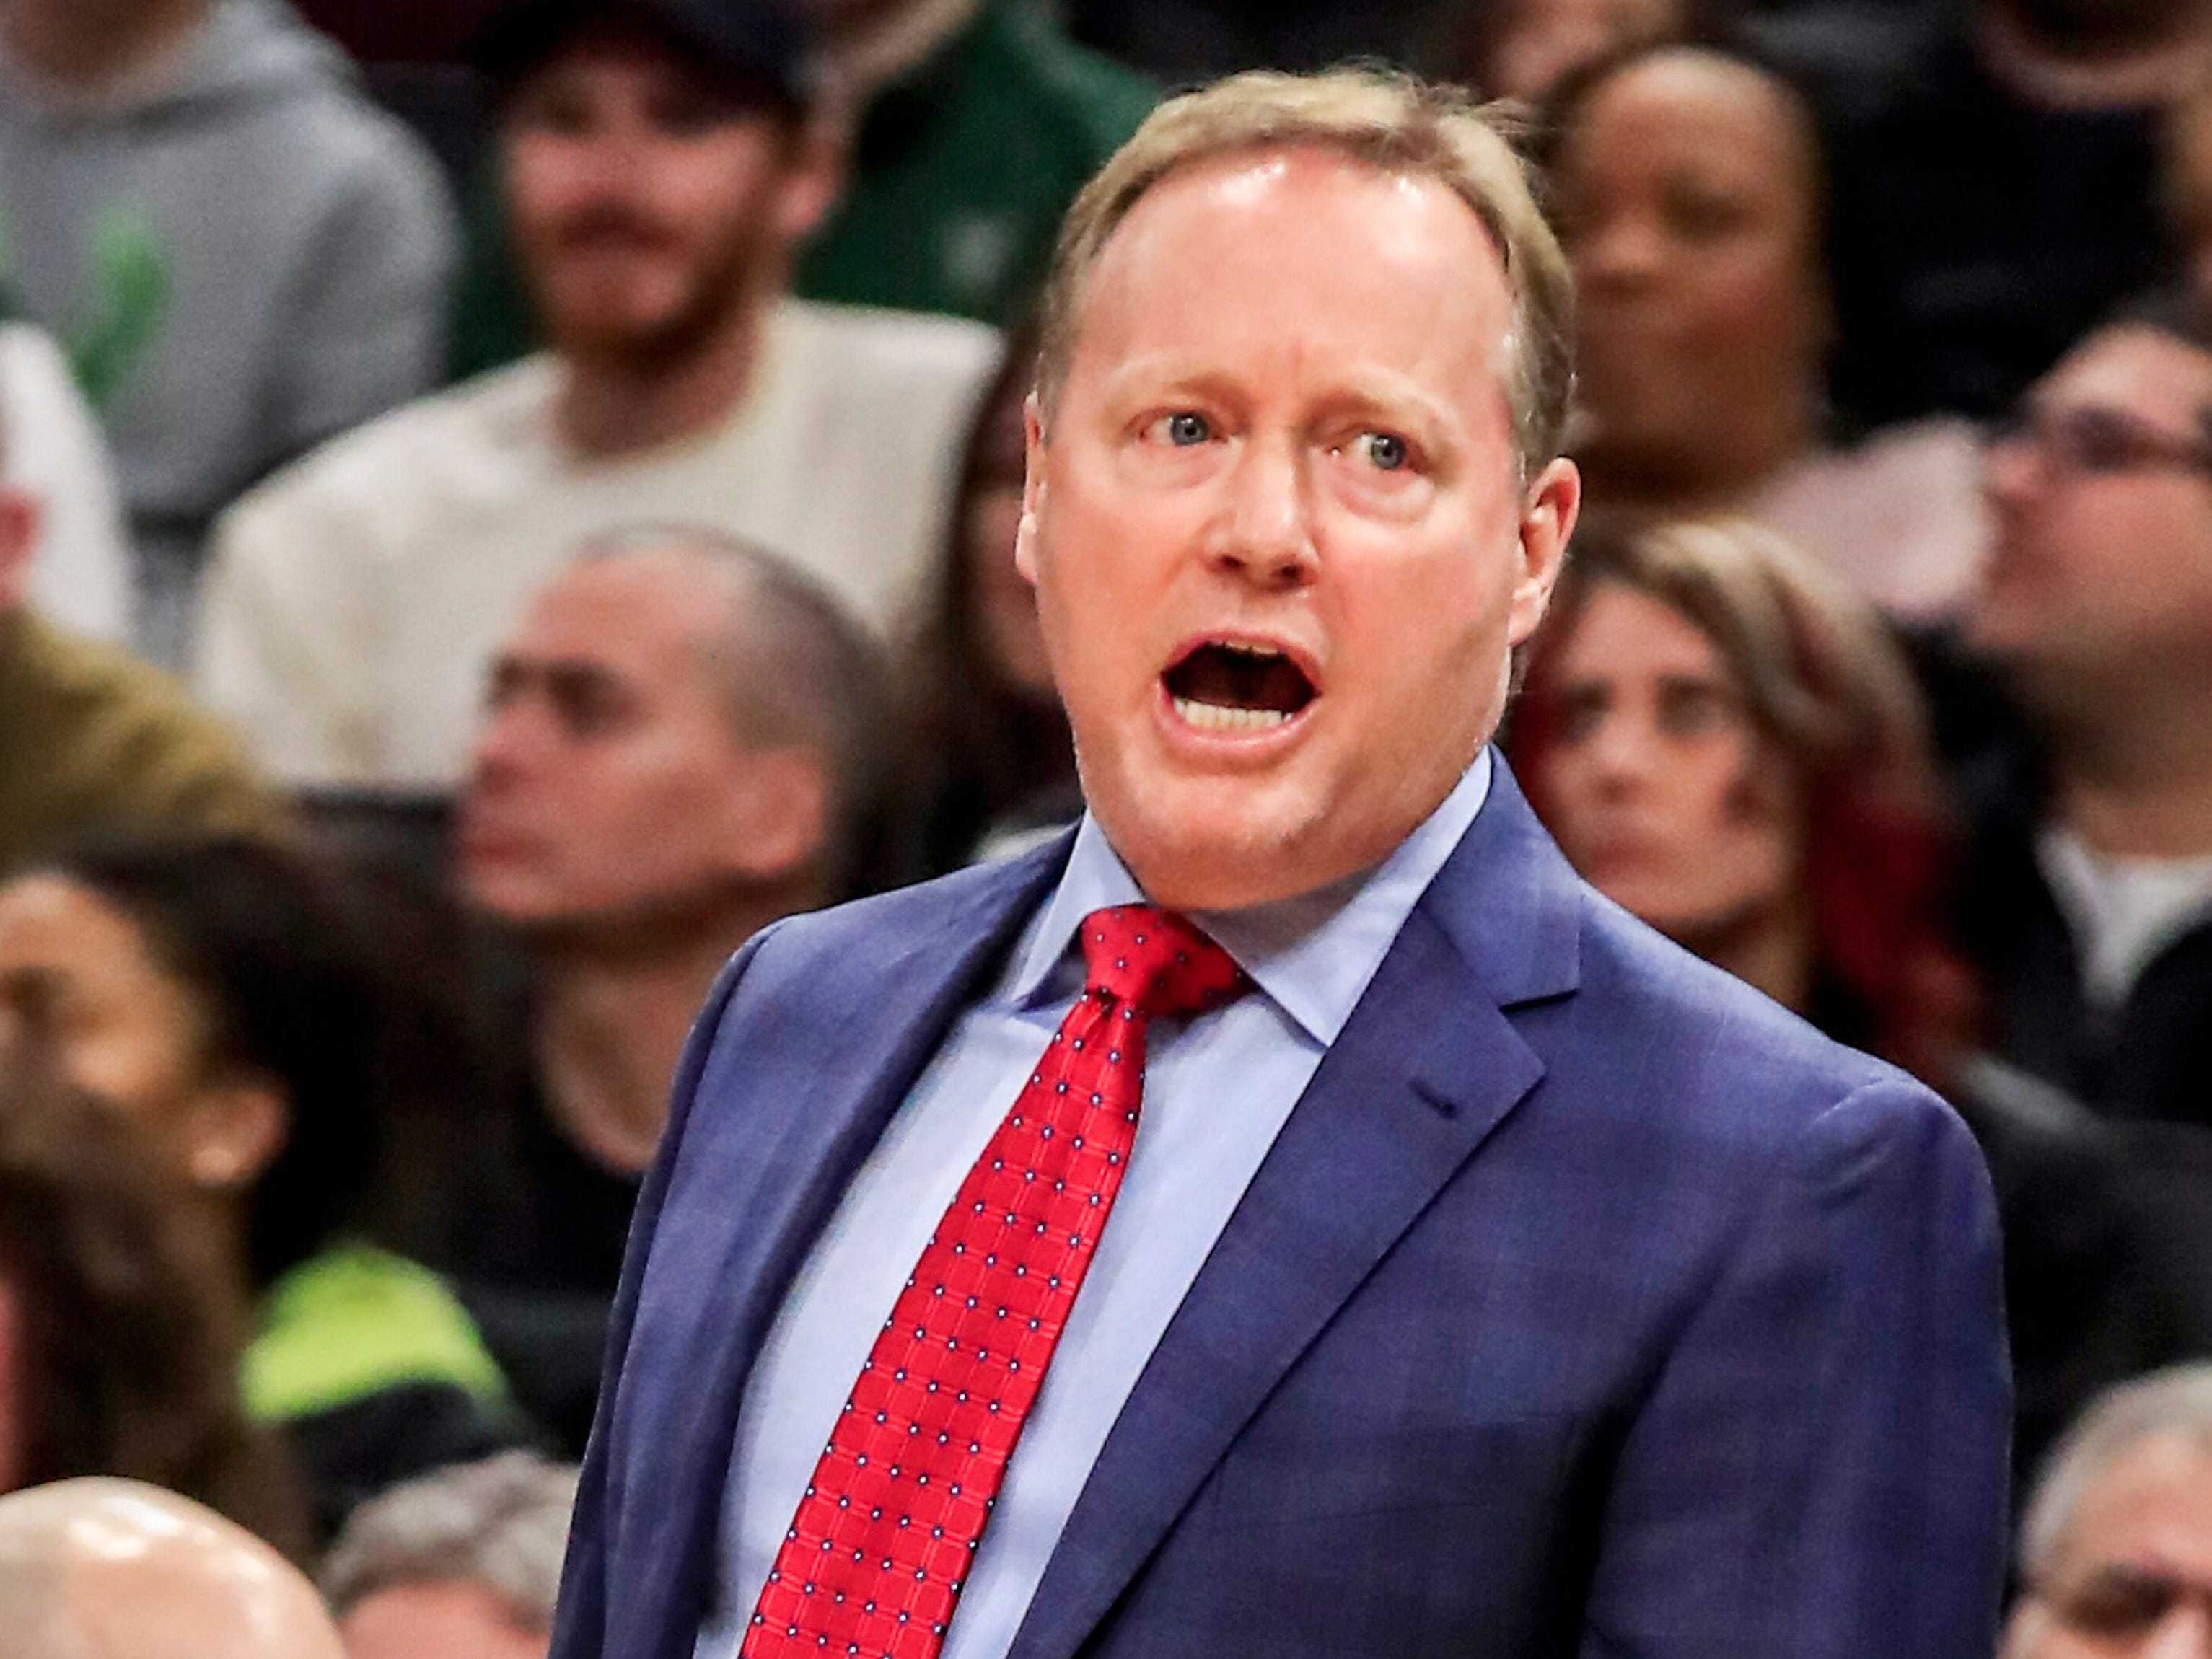 Bucks head coach Mike Budenholzer gets on the refs as his team takes on the Heat.